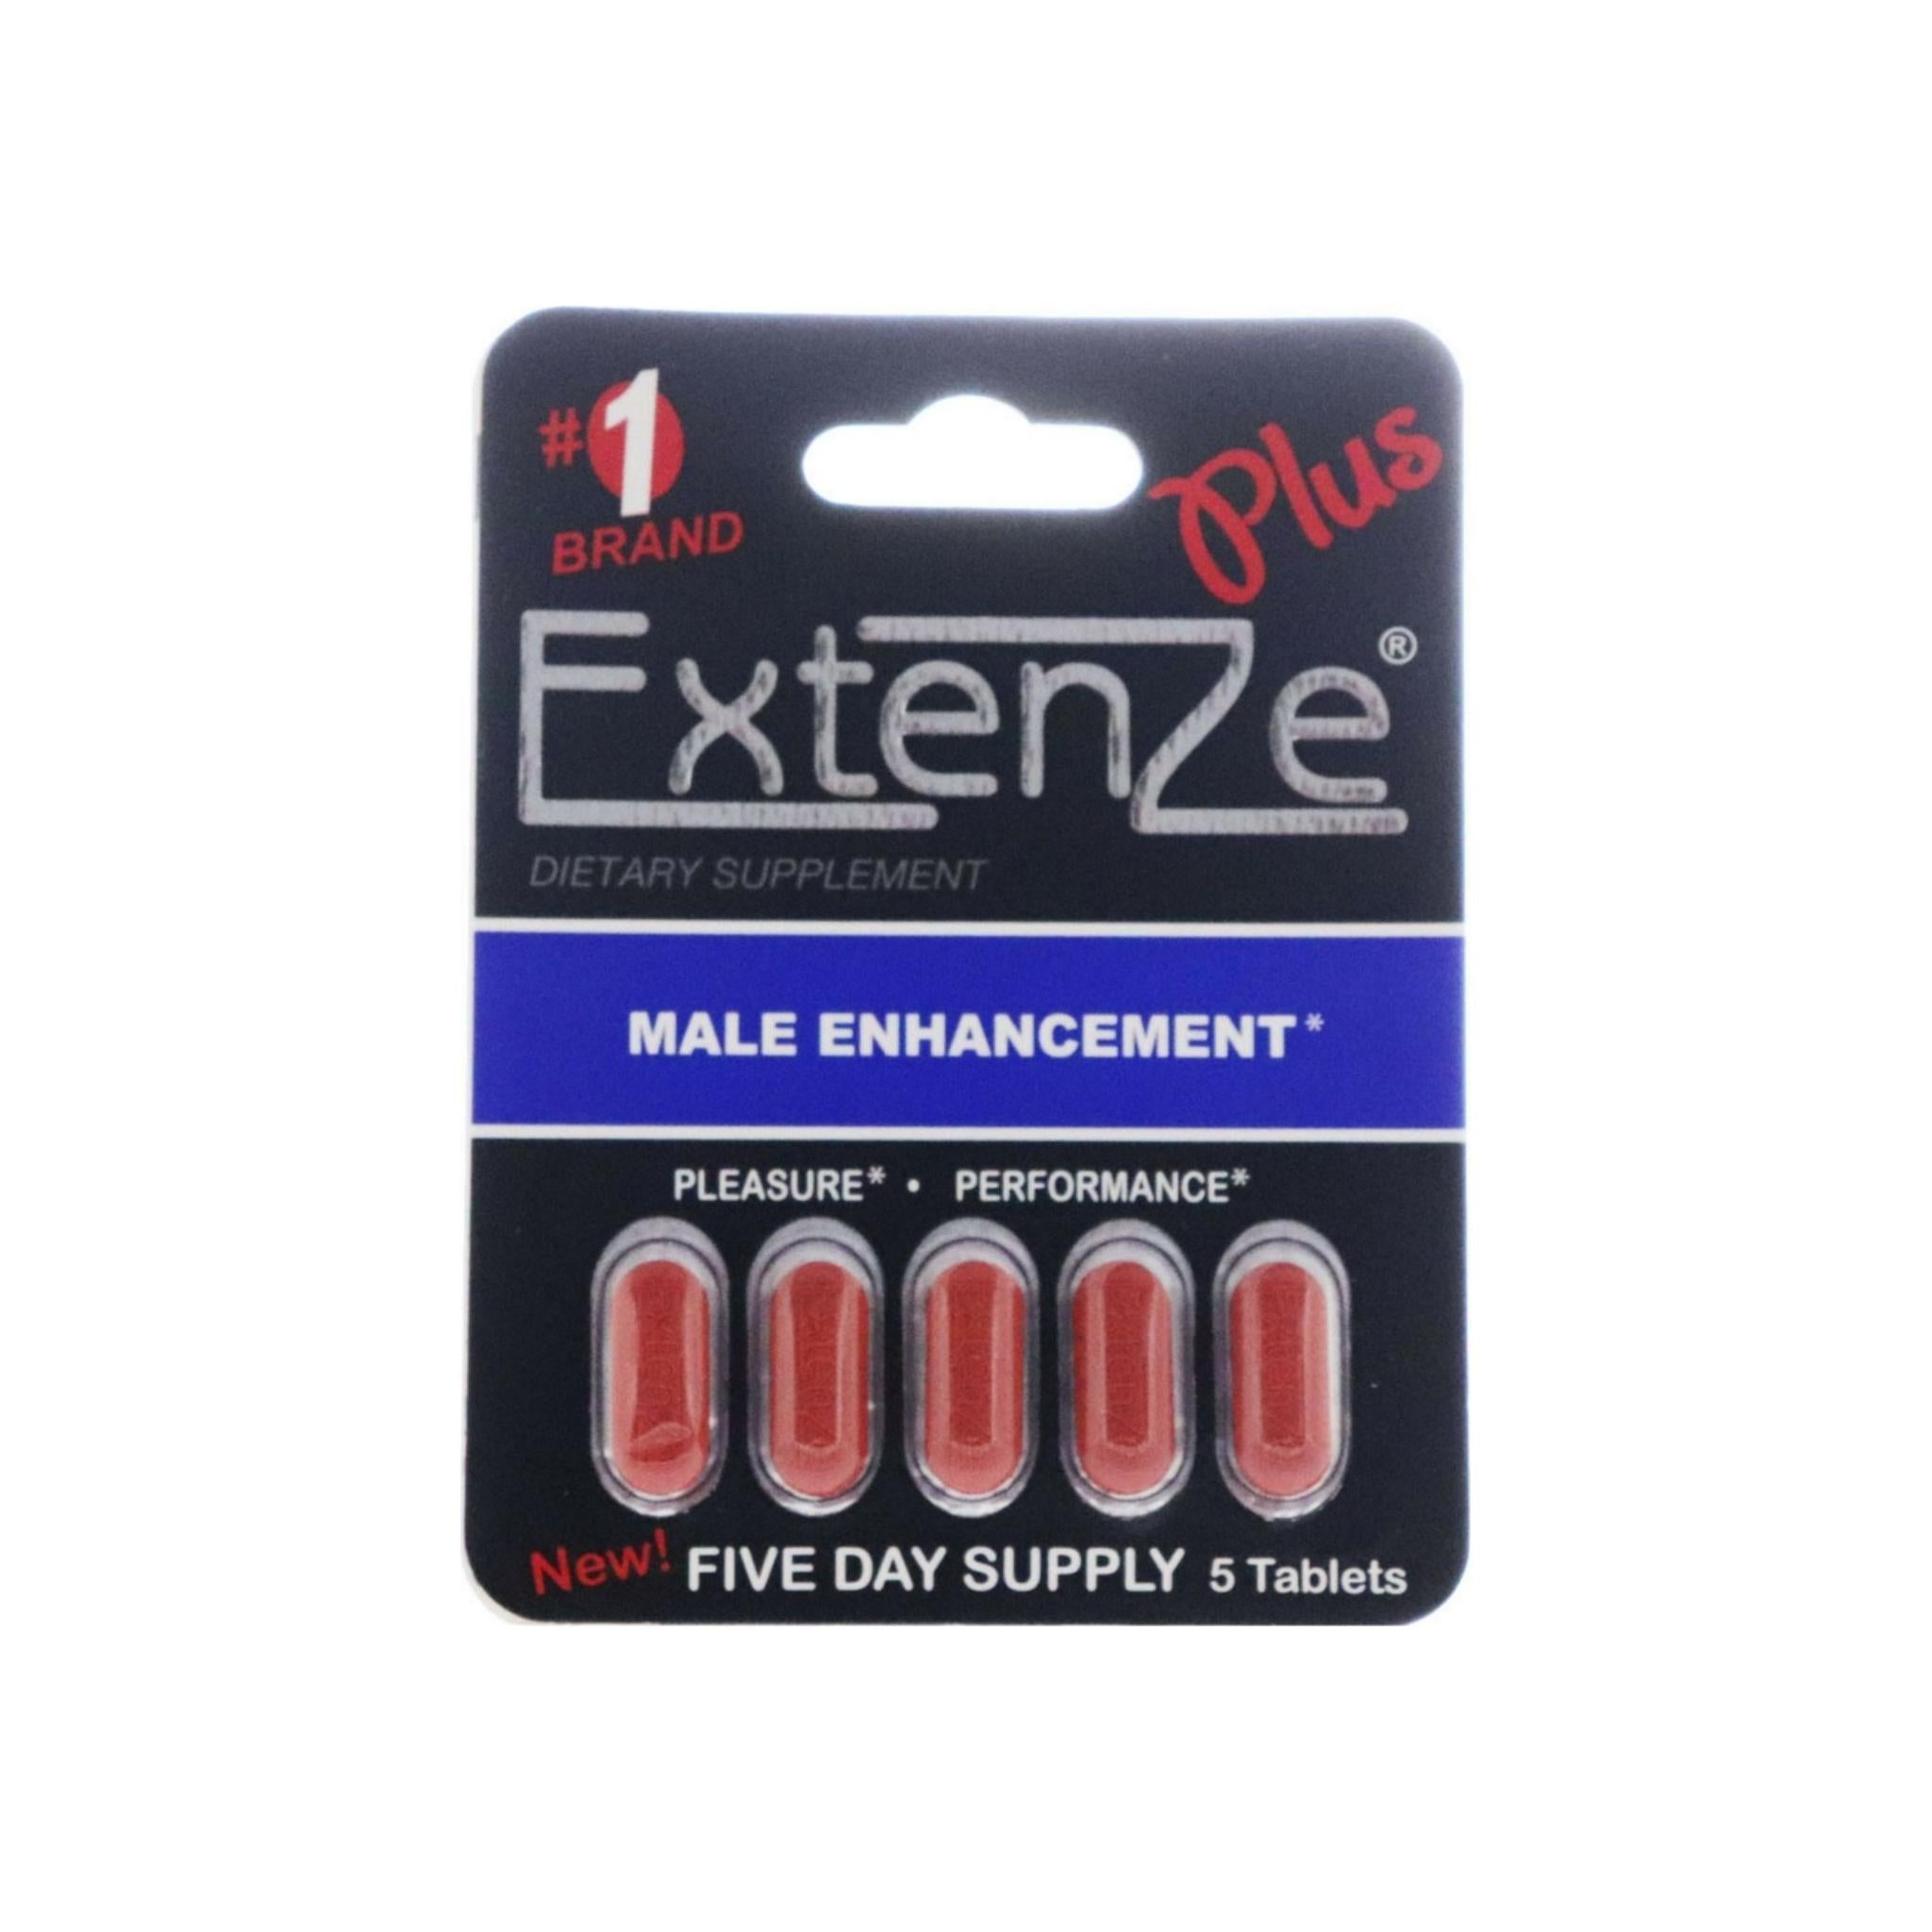 Are There Cases Where A Man'S Penis Has Shrunk After Stopping Use Of Extenze